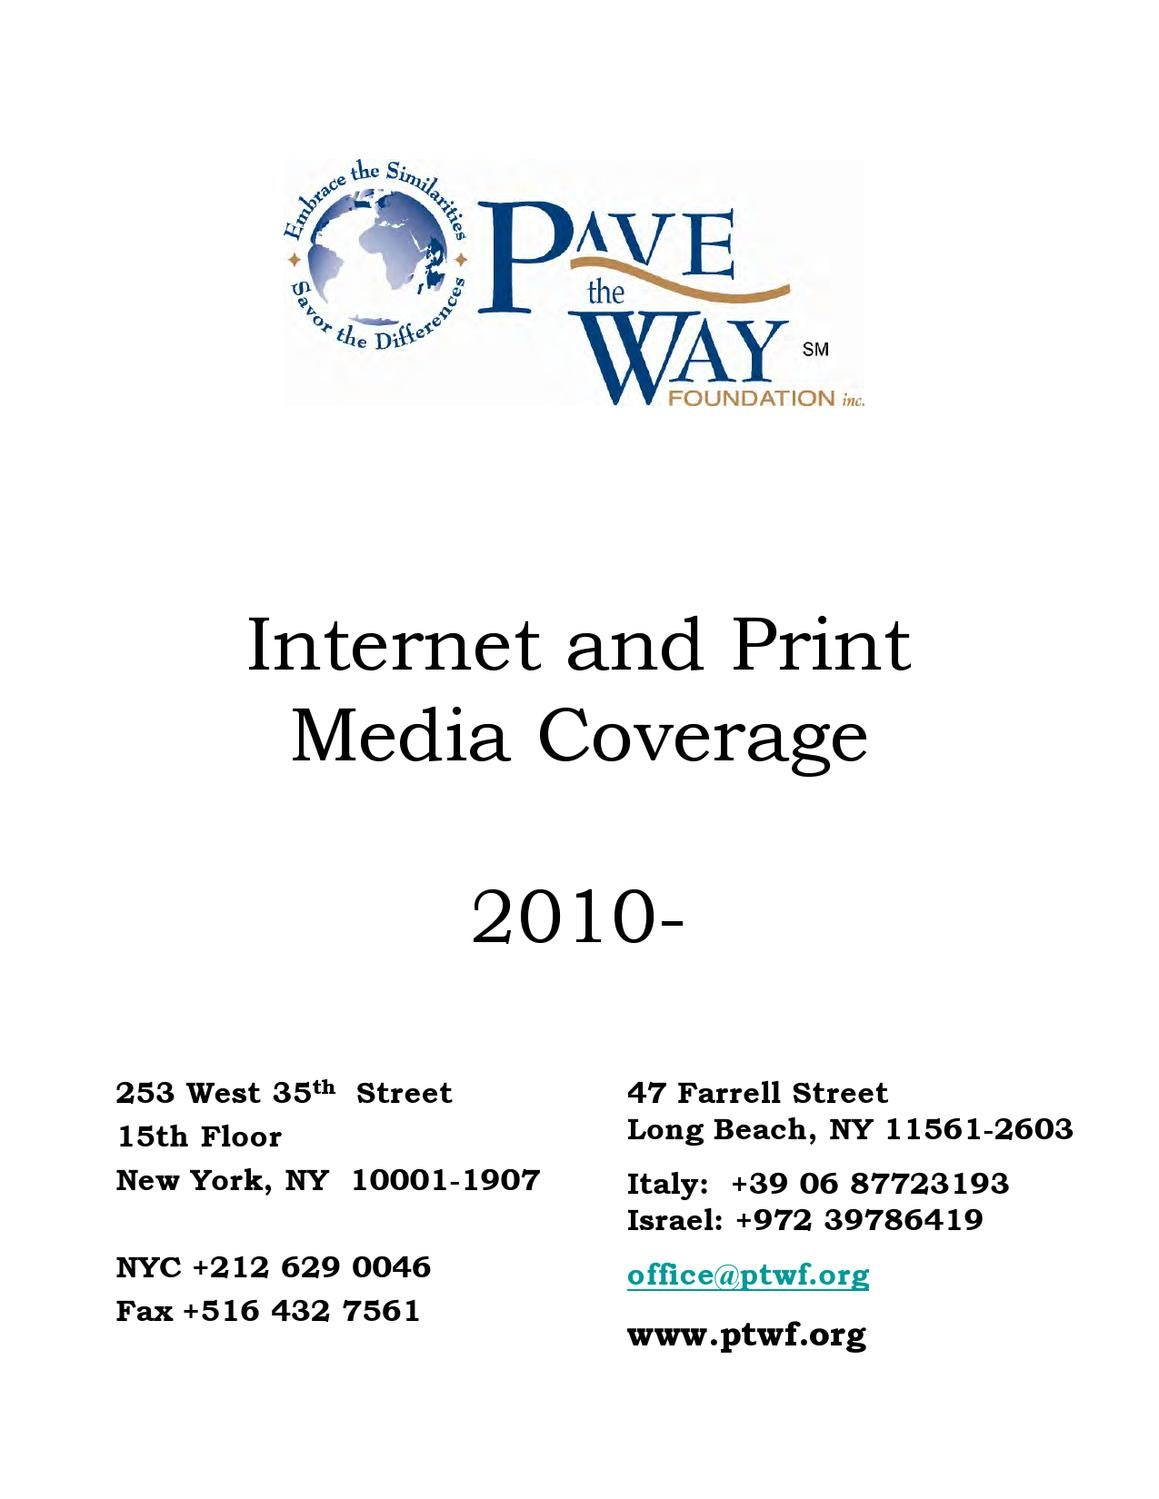 Pave the Way Foundation News Coverage 2010 by Dennis Tritaris - issuu